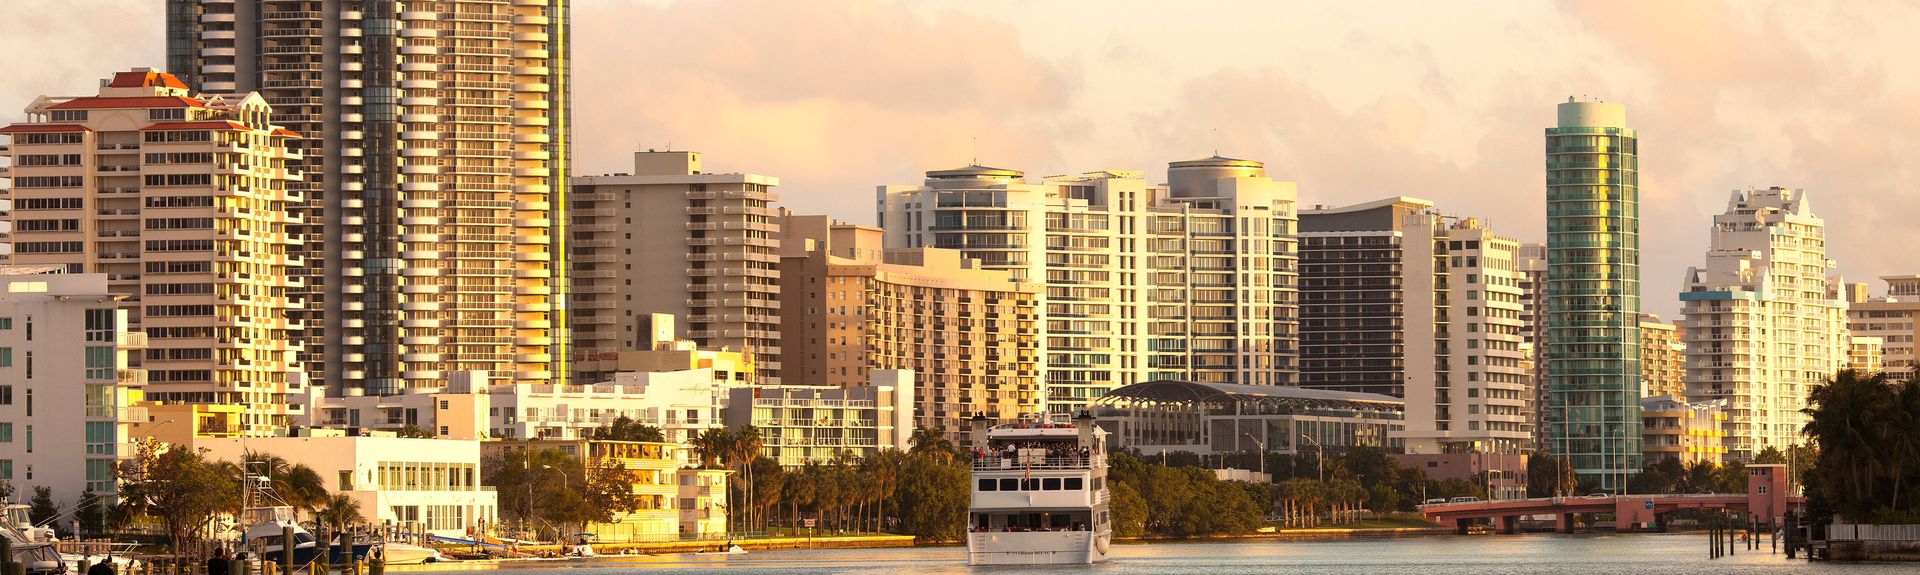 Mid Beach, Miami Beach, Florida, United States of America